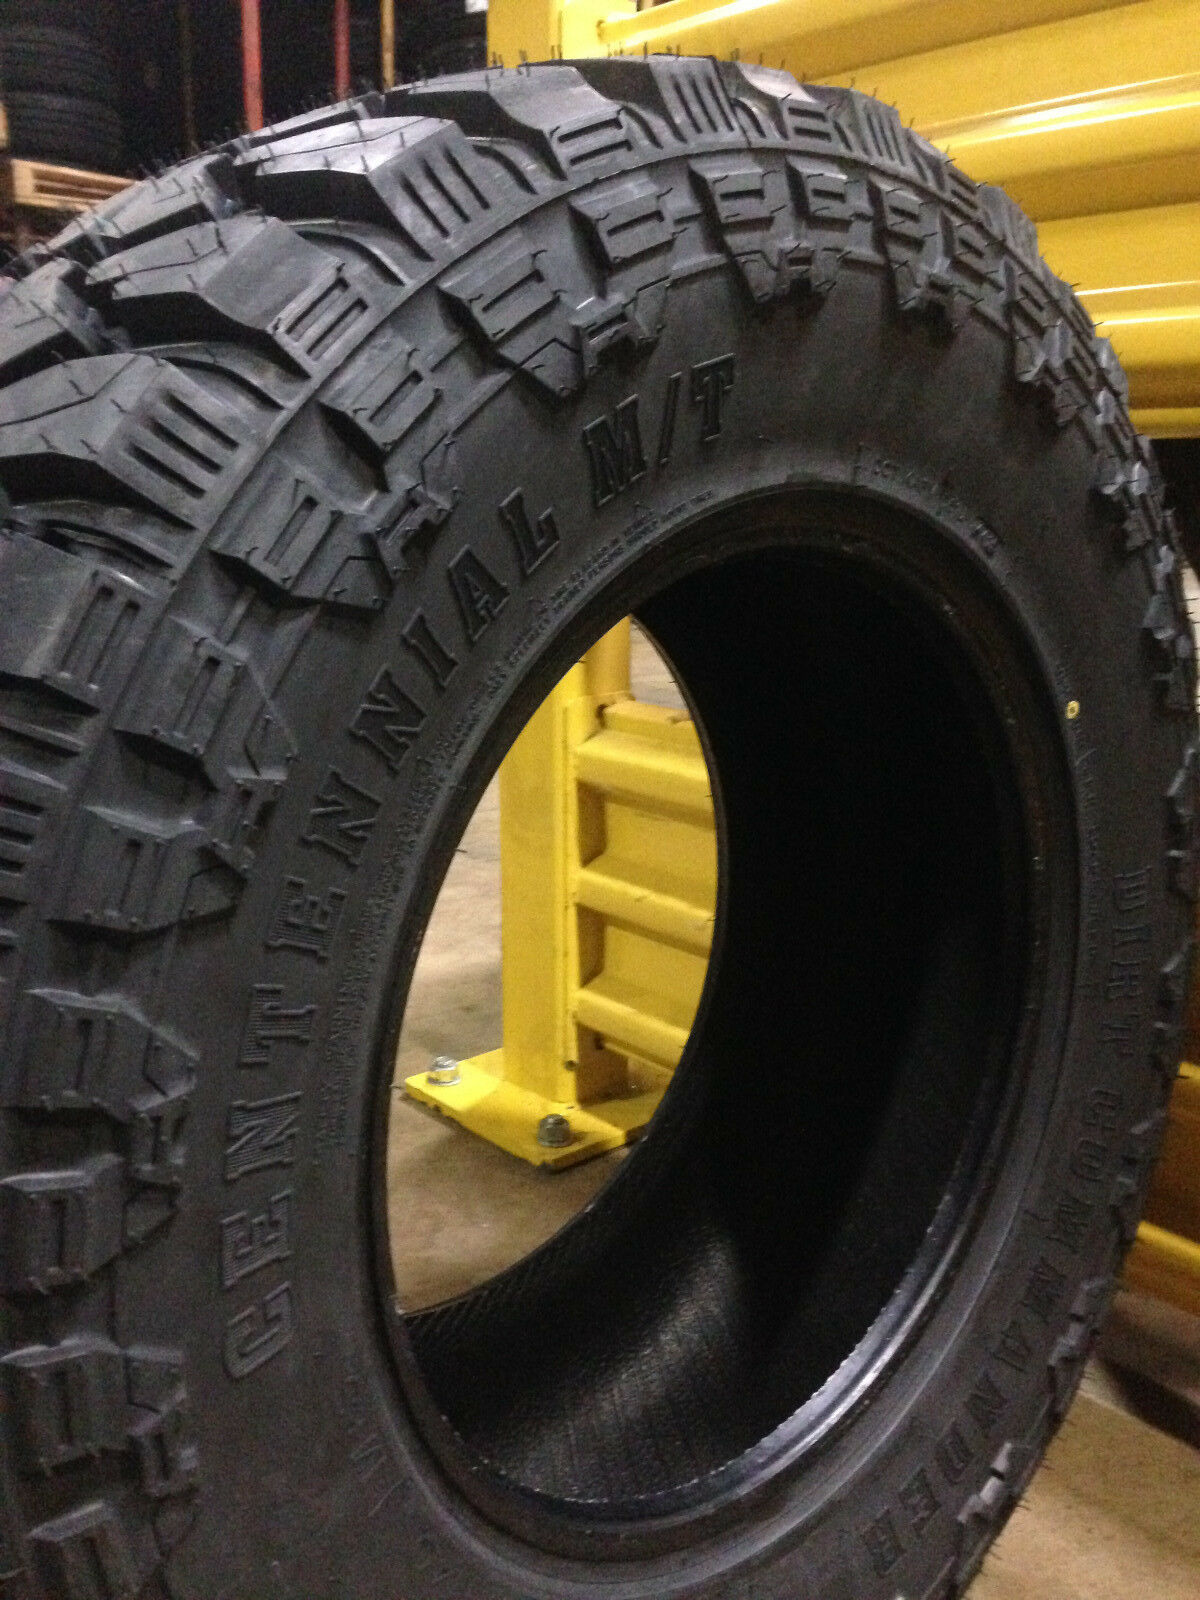 Jeep tire accessories set of 5 M/T Mud Tire MT 33 12.50 17 R17. Deliverd in 7 to 9 days.